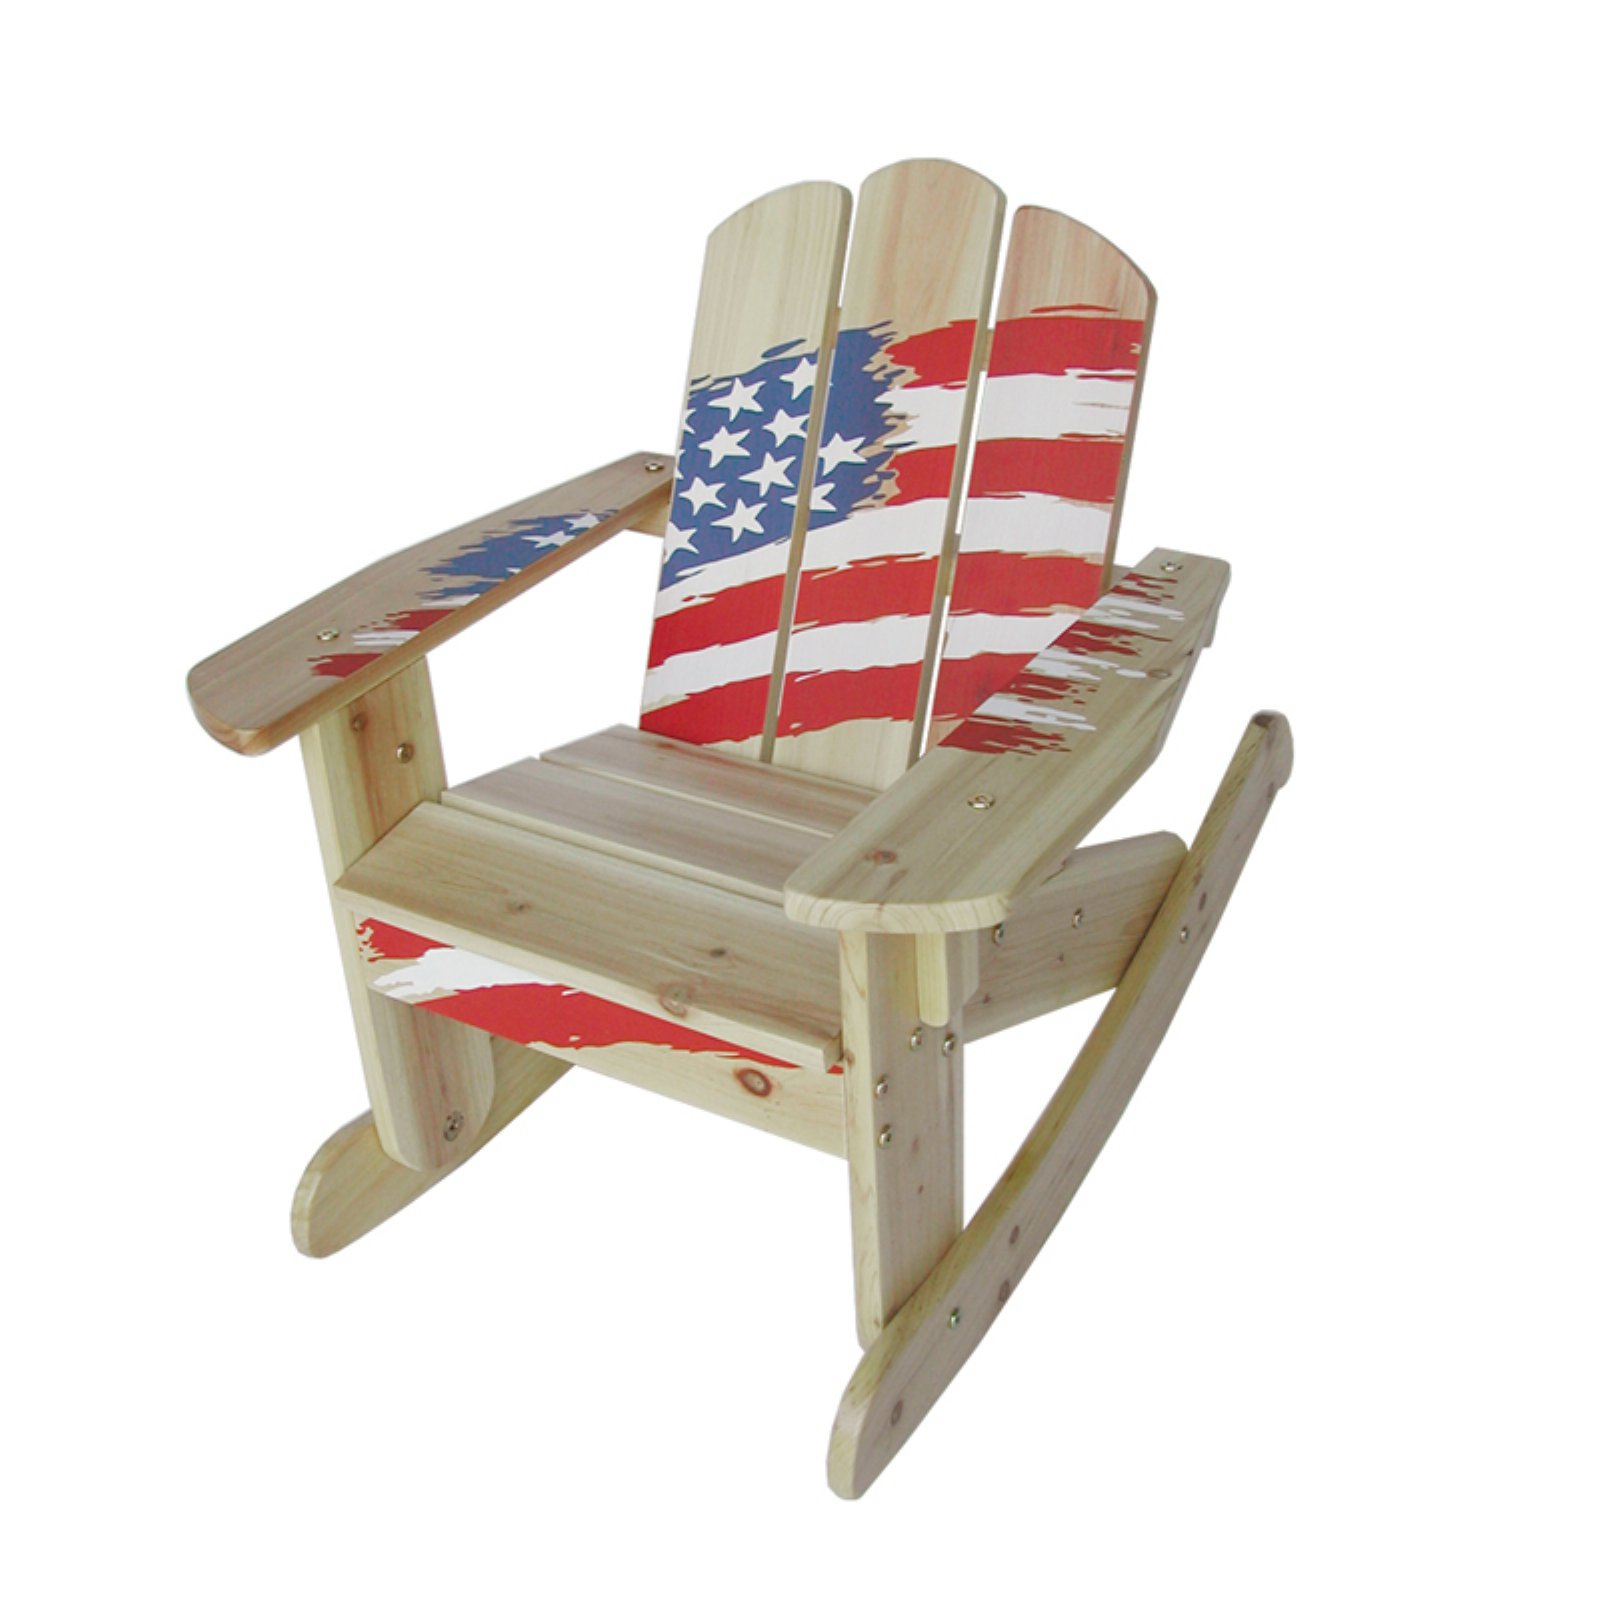 toddler wooden rocking chair covers of hampshire facebook kids american flag walmart com